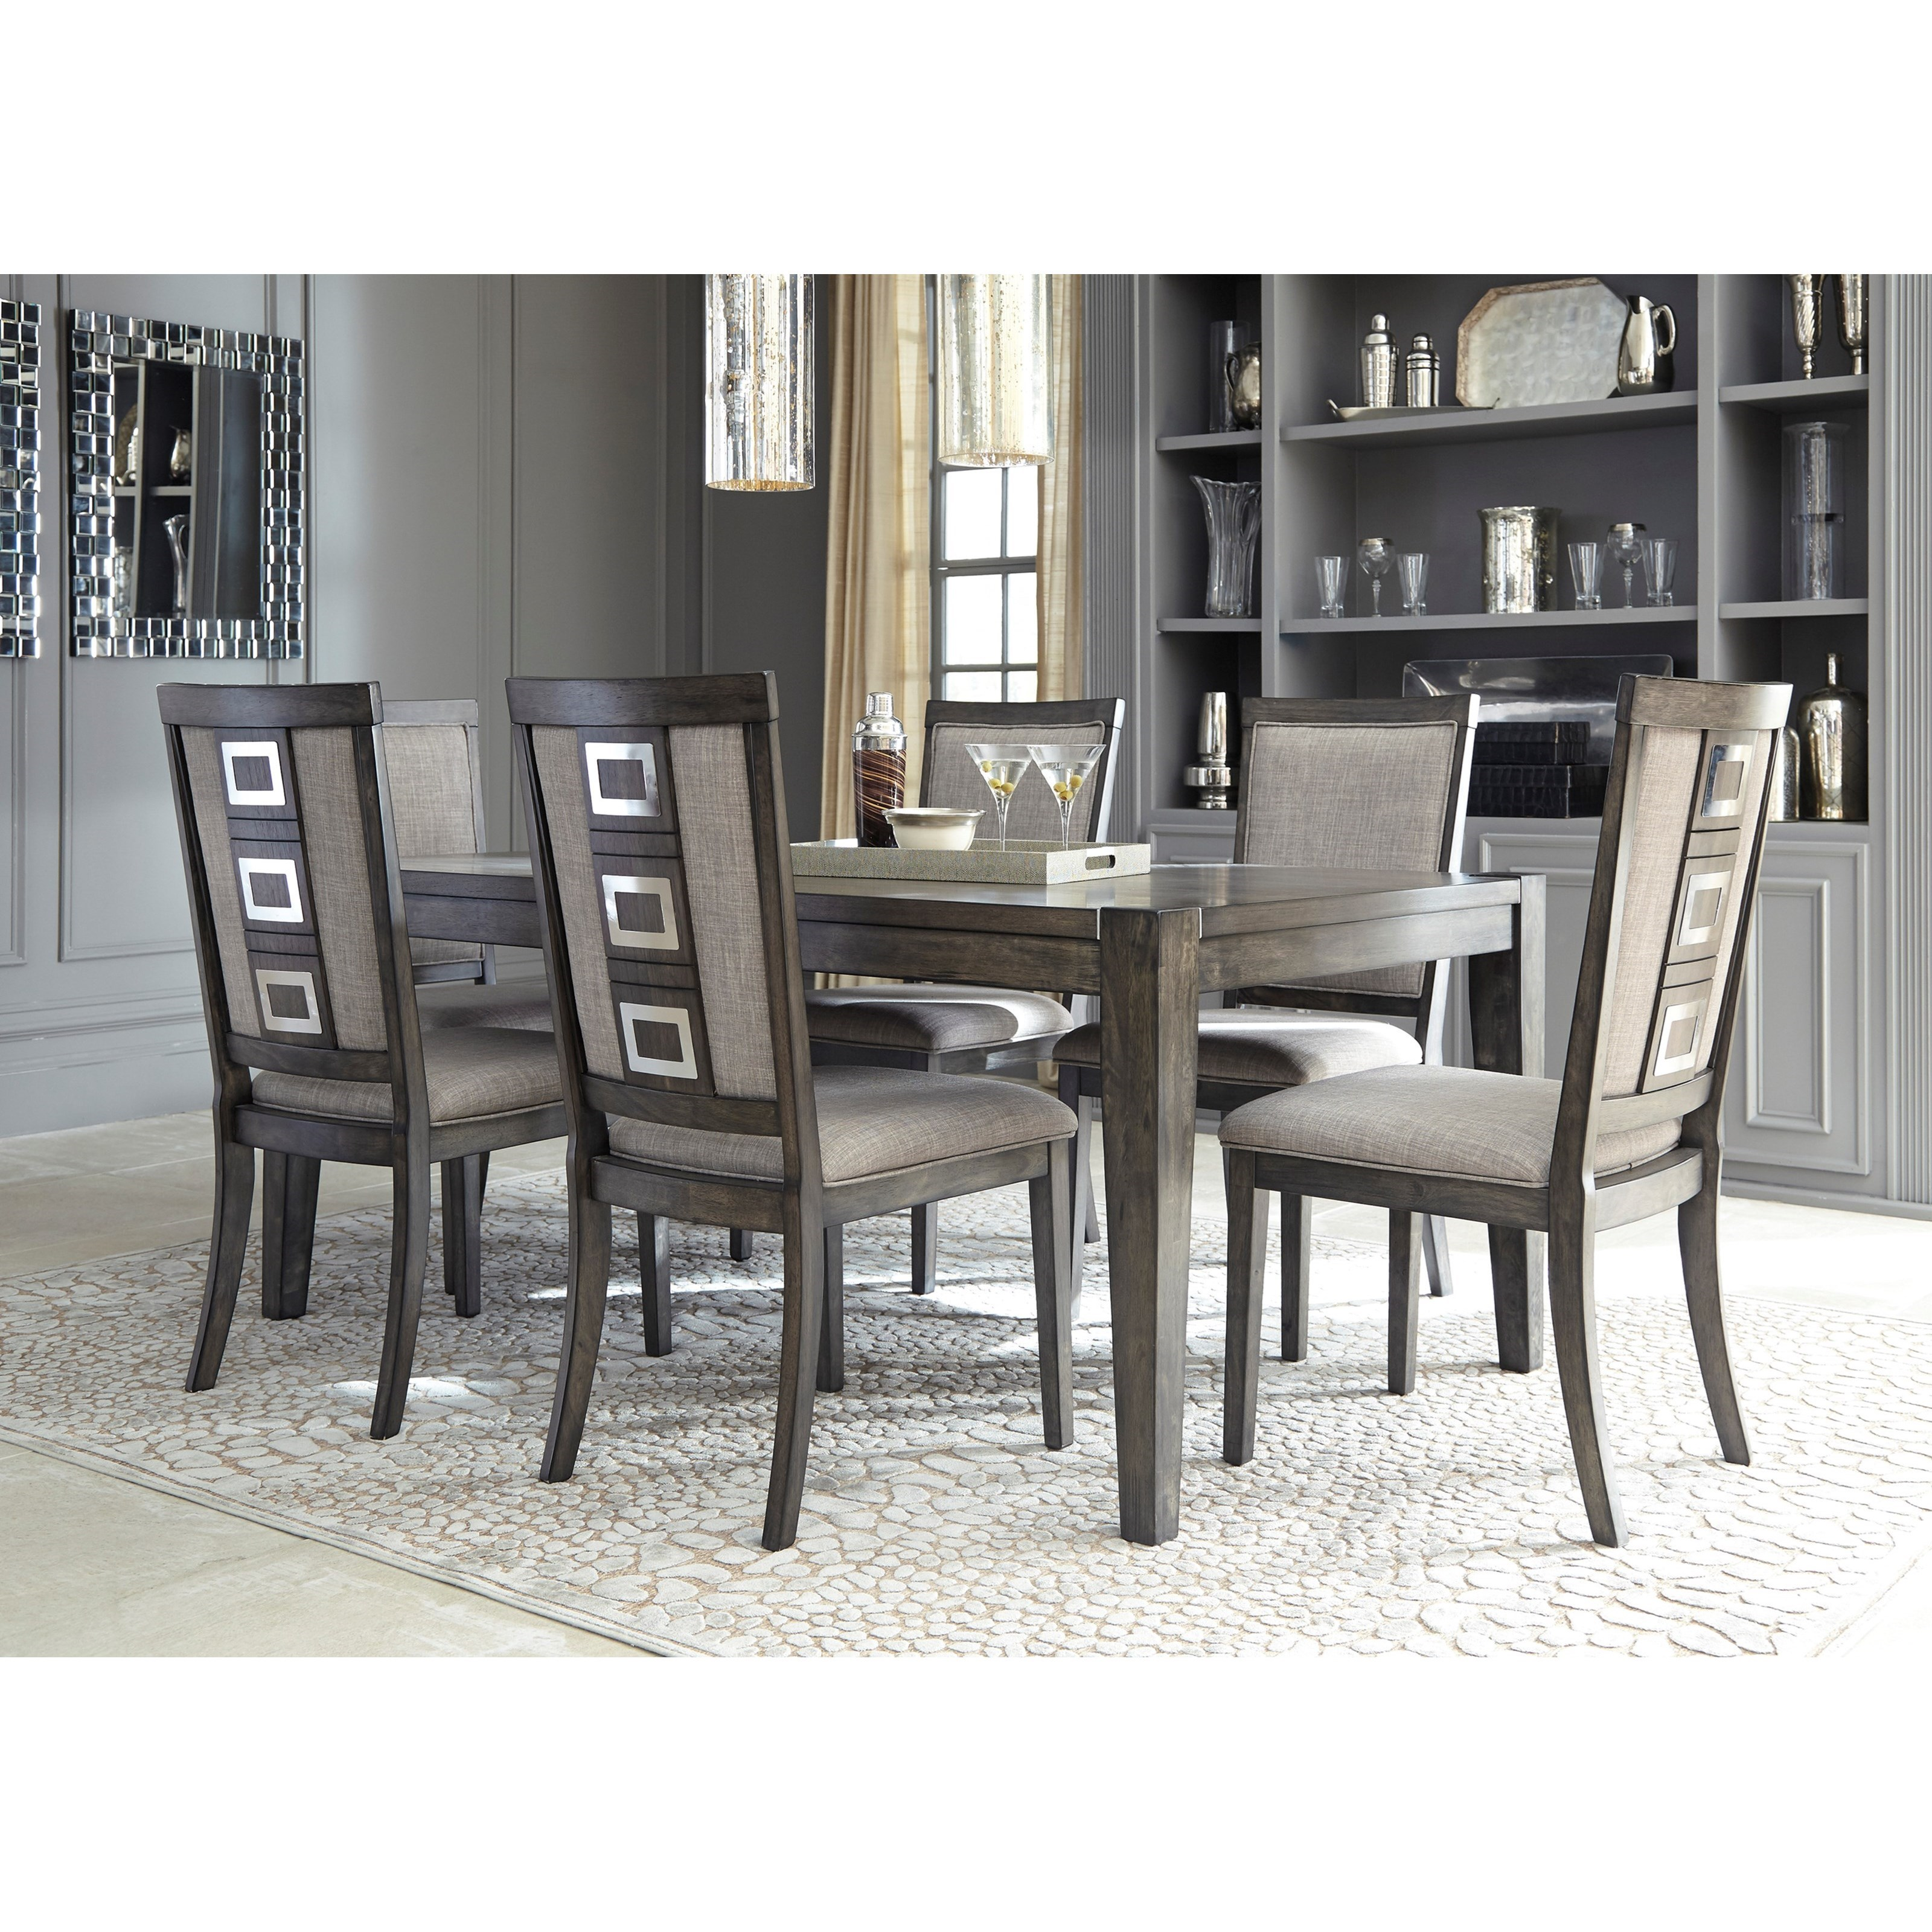 Ashley S Nest Decorating A Dining Room: Signature Design By Ashley Chadoni D624-01 Contemporary